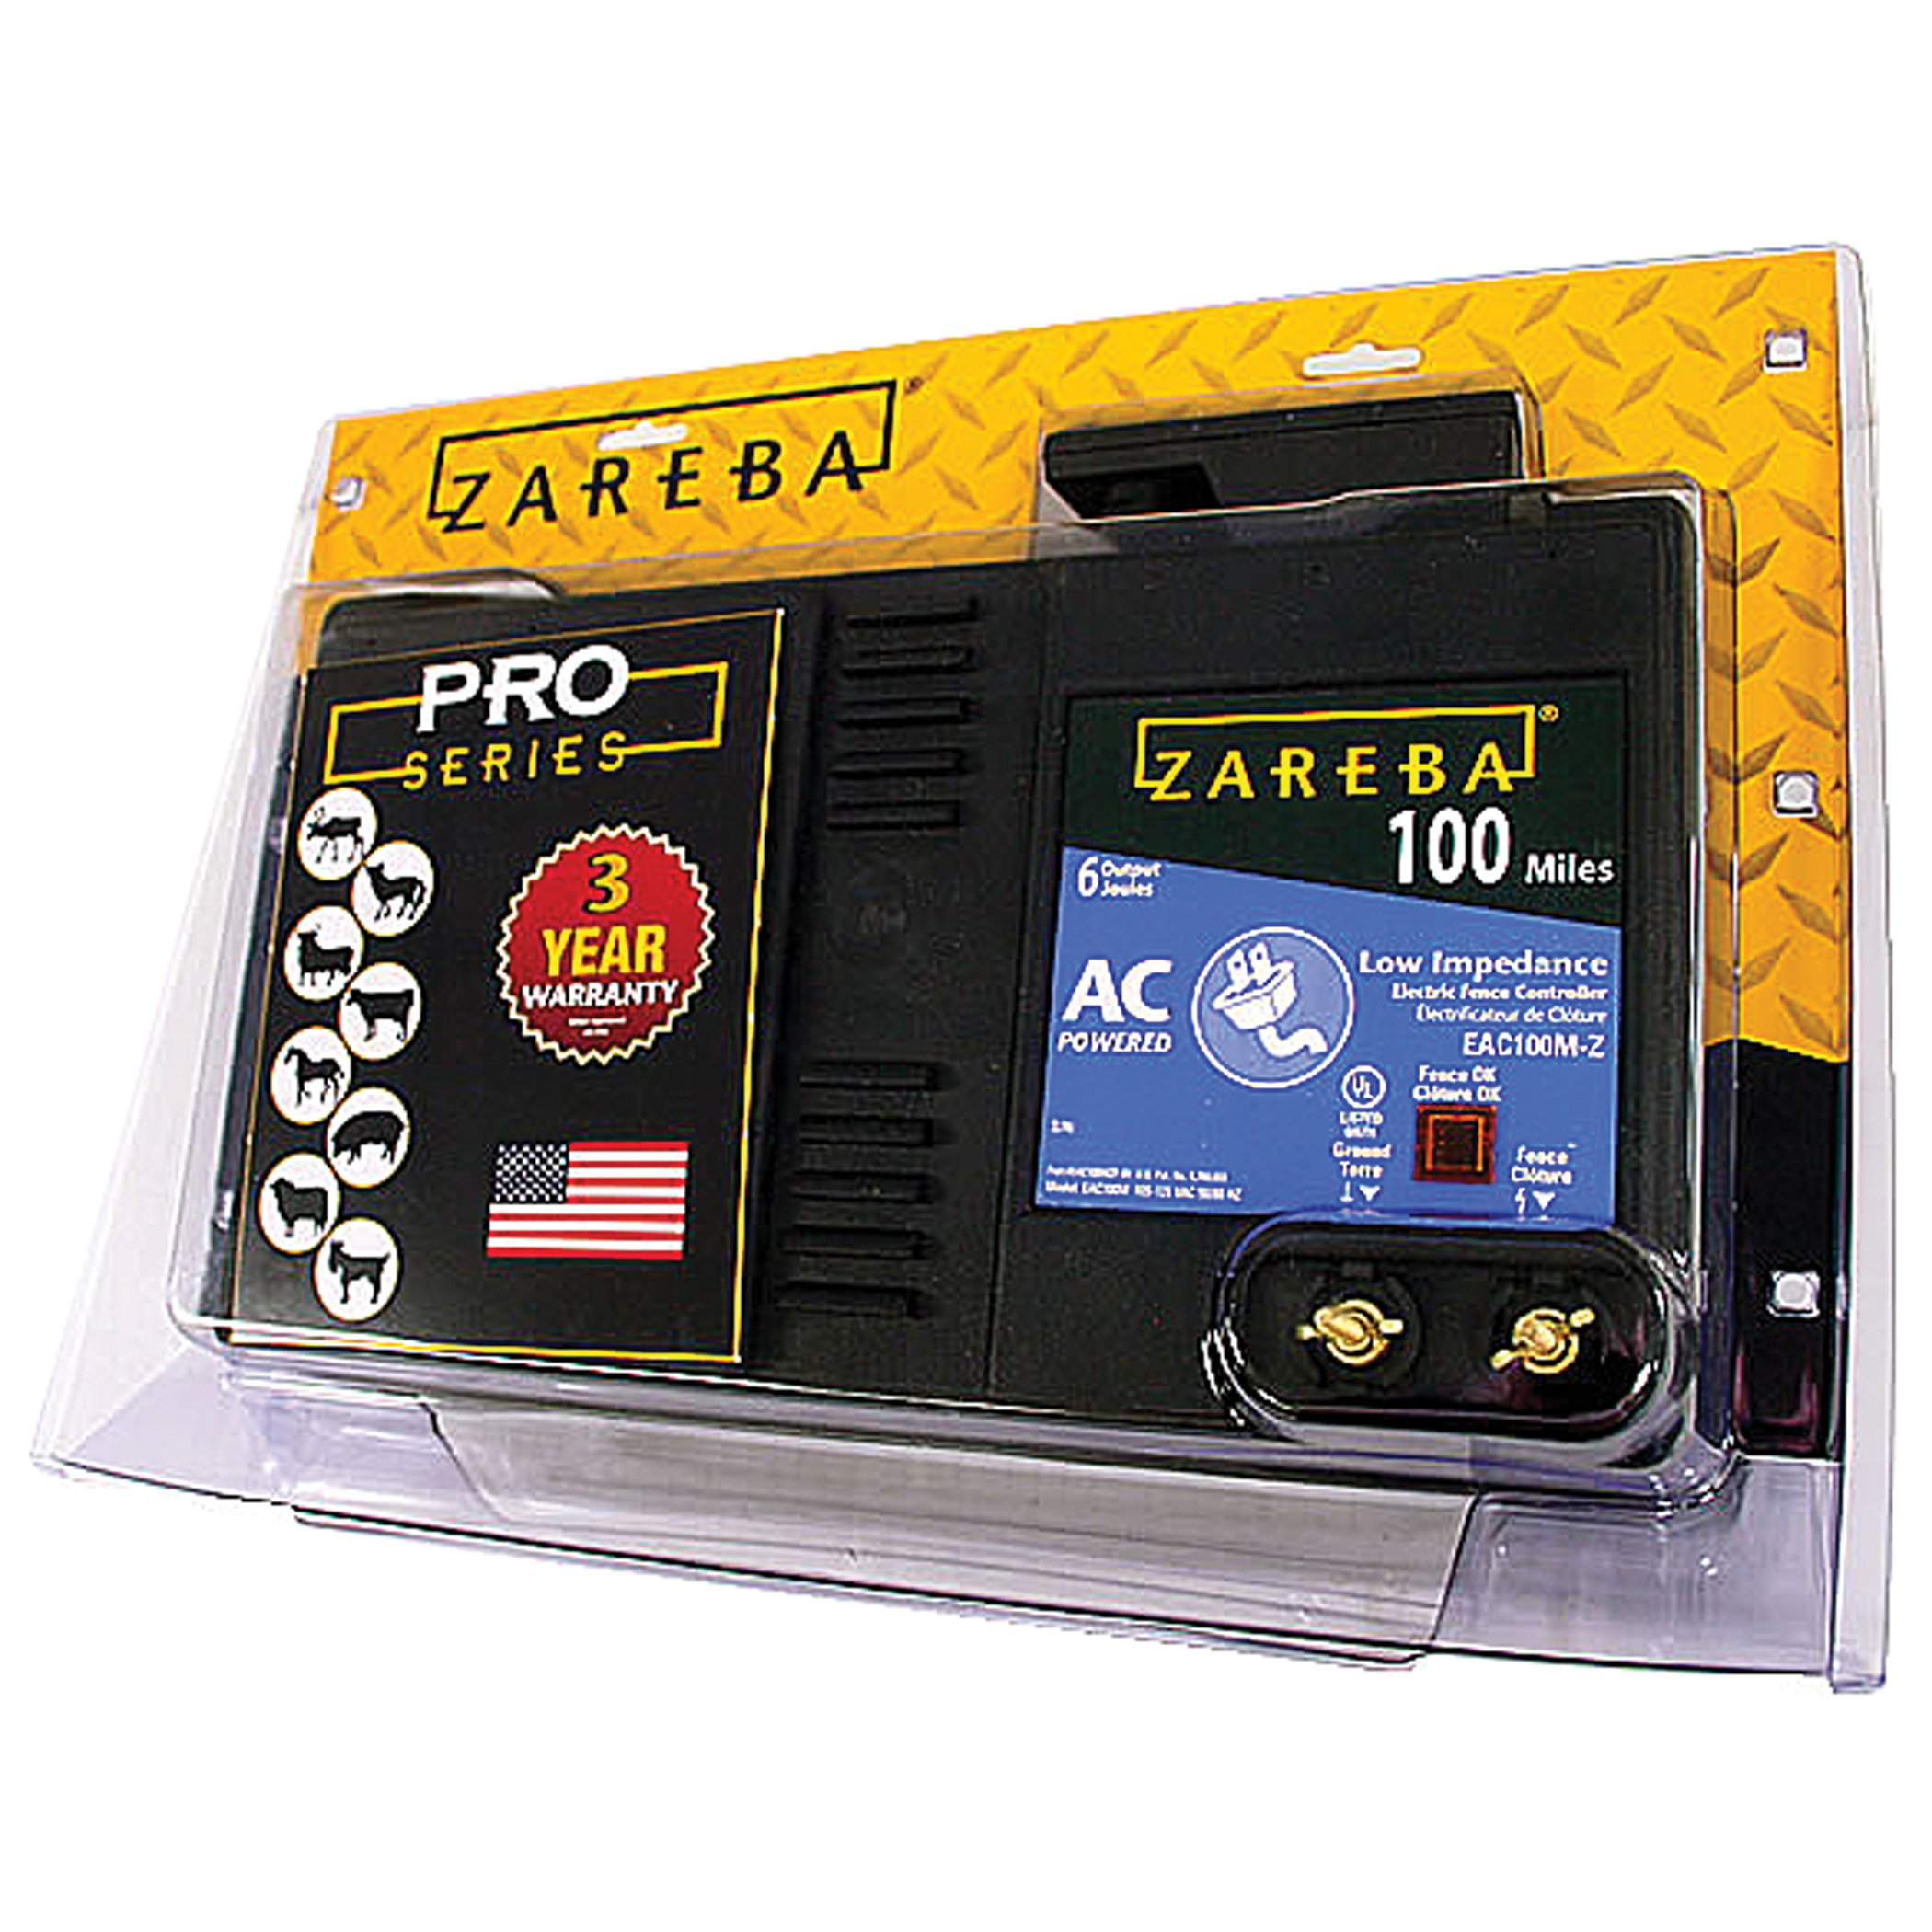 Woodstream ZAREBA AC LOW IMPEDANCE ELECTRIC FENCE CHARGER